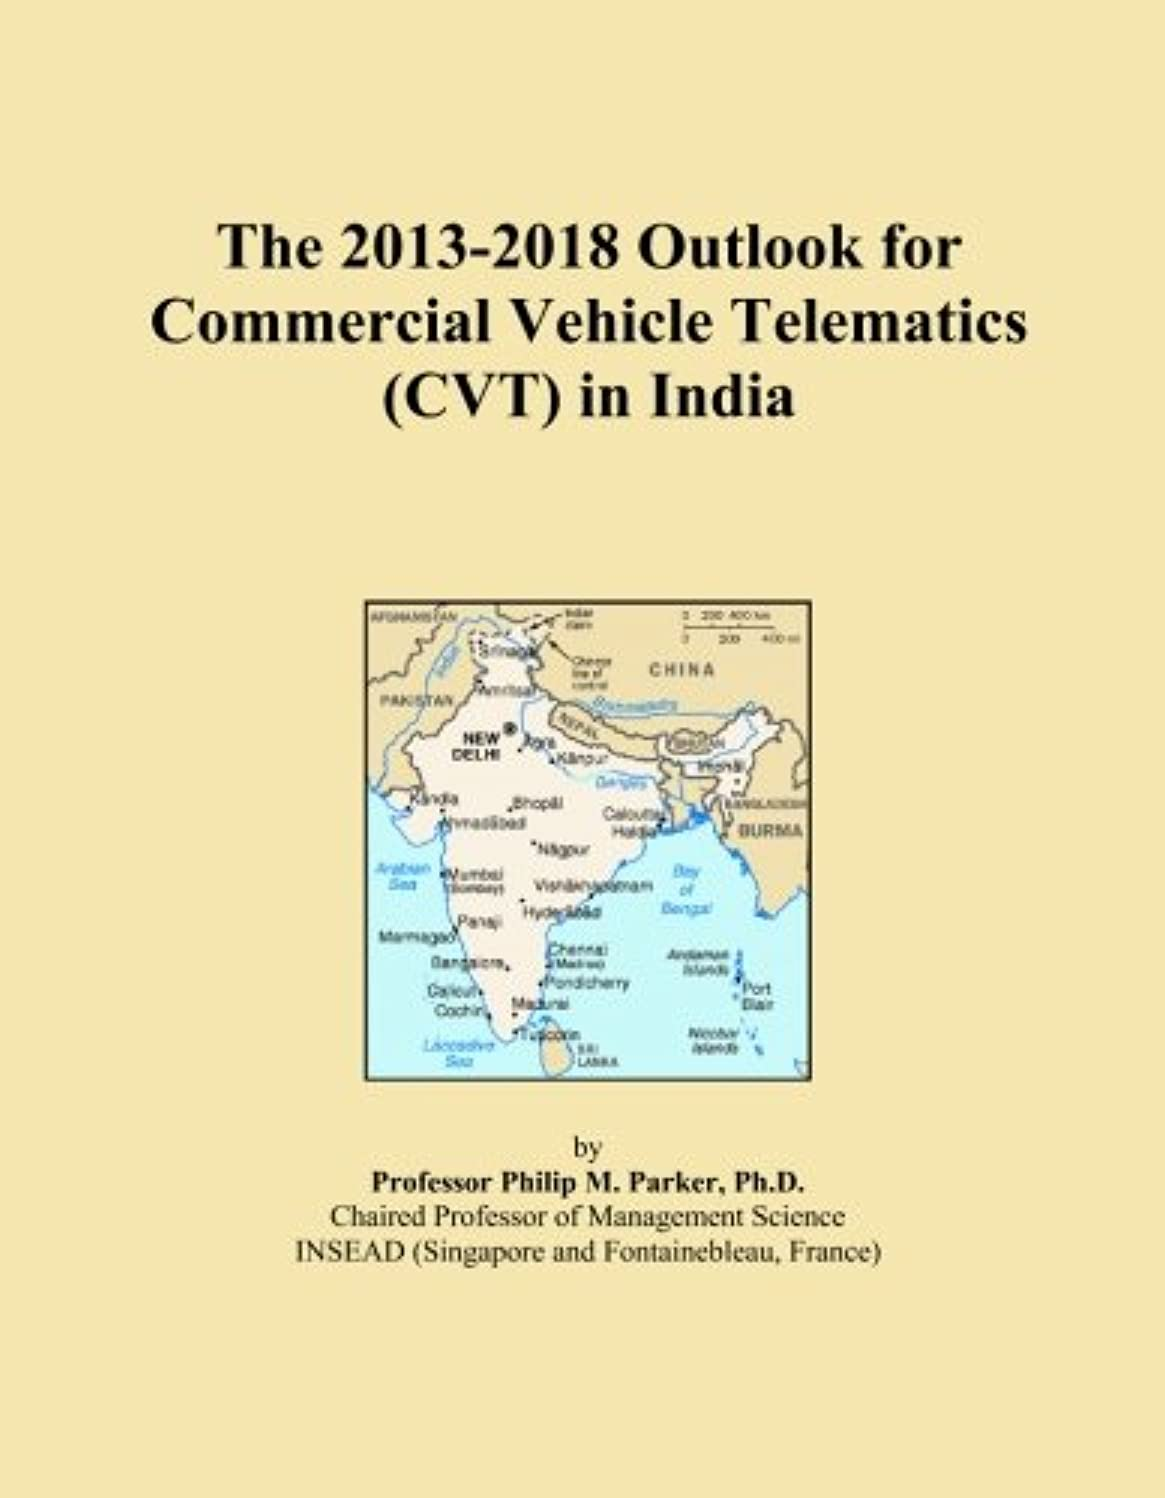 The 2013-2018 Outlook for Commercial Vehicle Telematics (CVT) in India